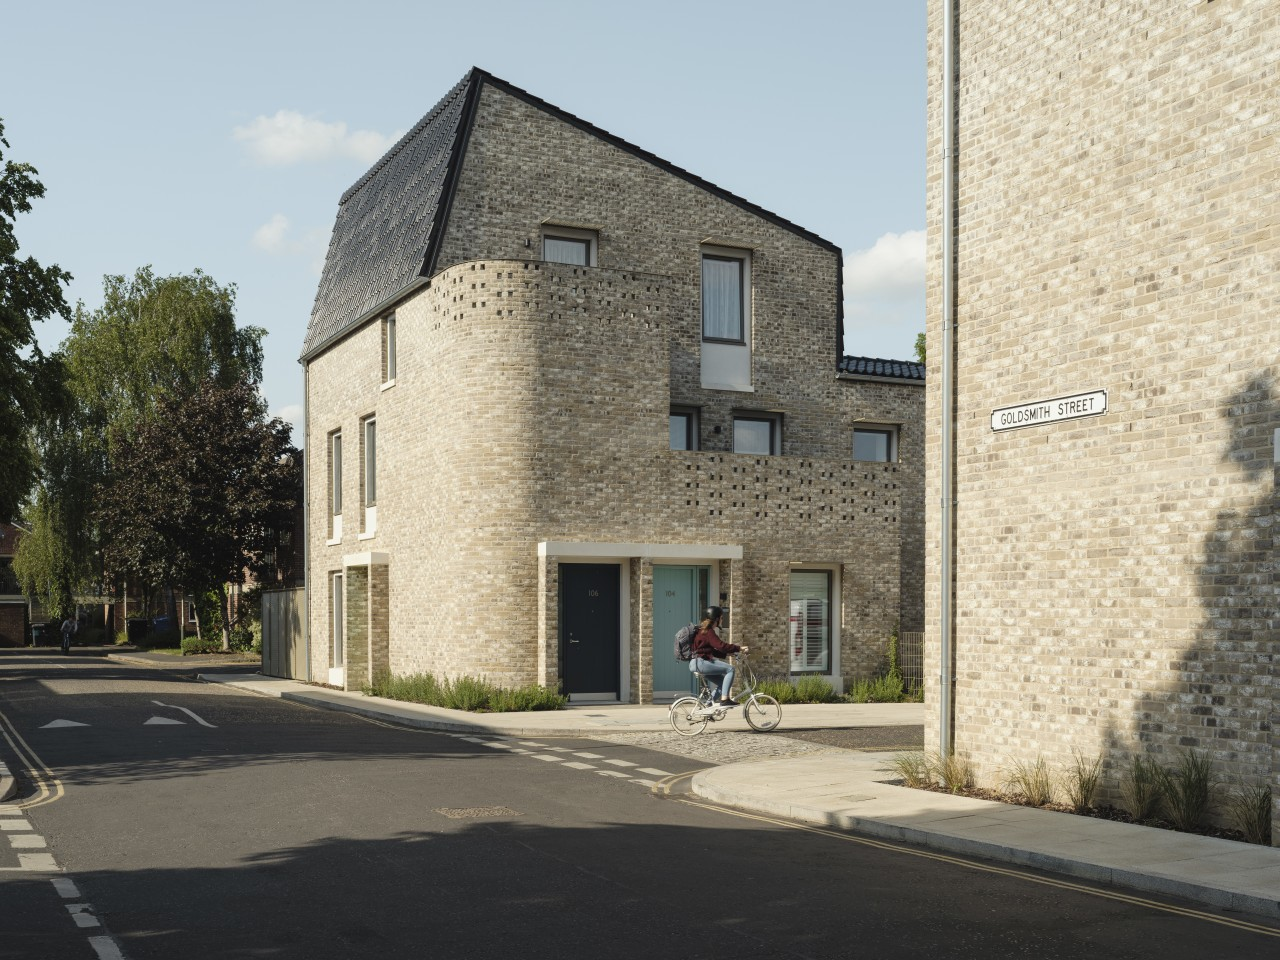 Goldsmith Street, by Mikhail Riches with Cathy Hawley, is shortlisted in the Architecture category. The project is an excellent example of affordable social housing that's energy efficient and green